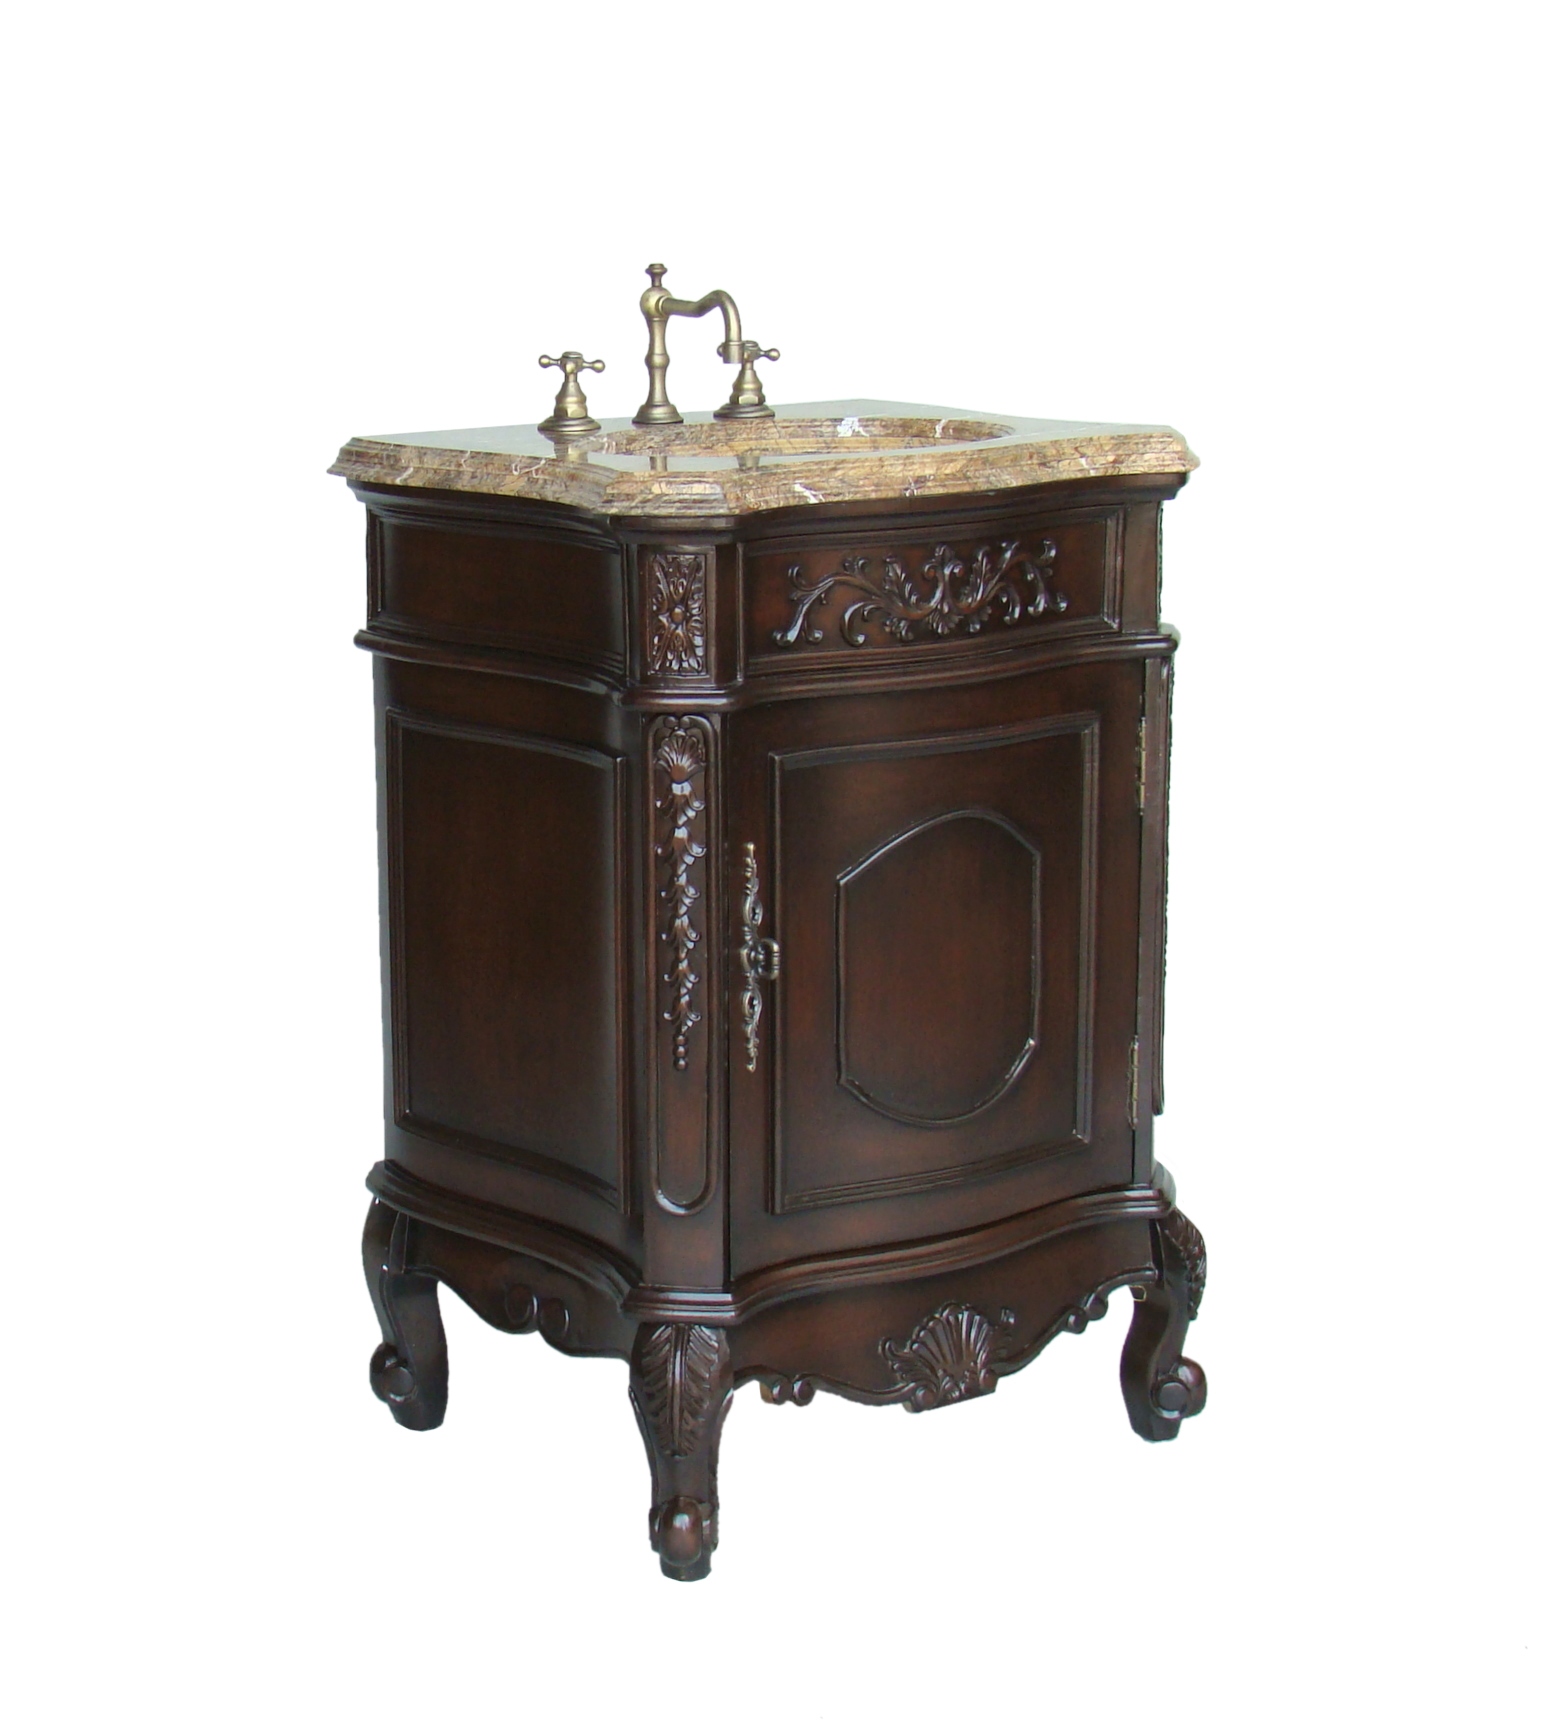 12 Inch To 29 Inch Wide Vanities Ornate Sink Vanity